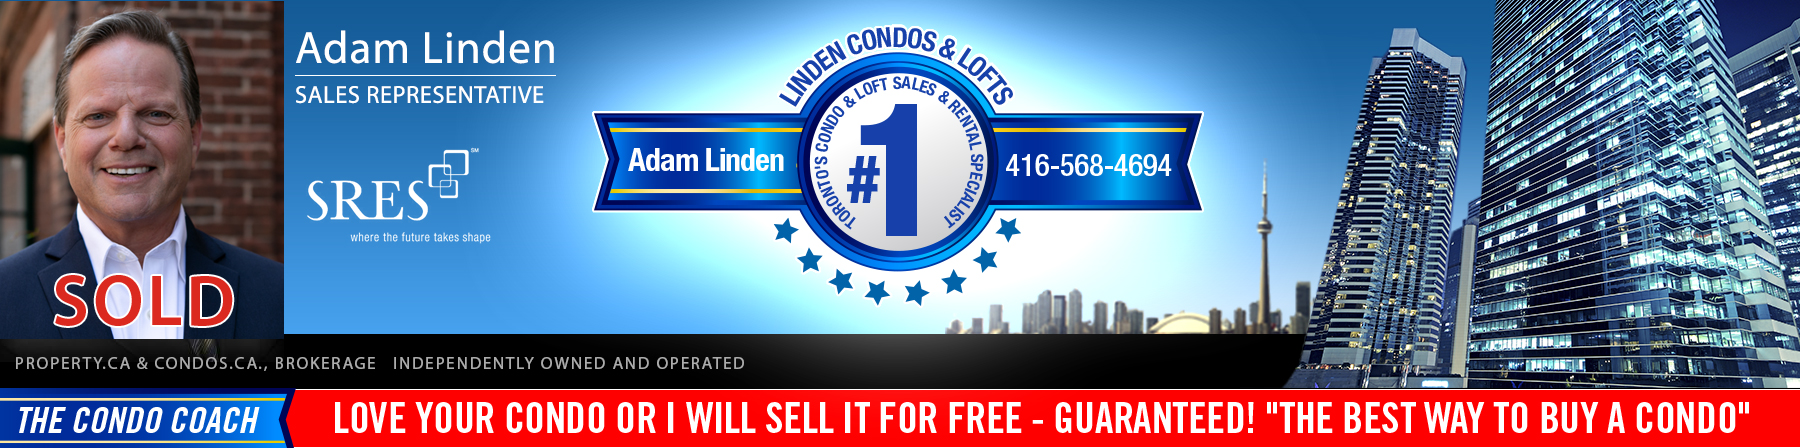 Adam Linden Real Estate